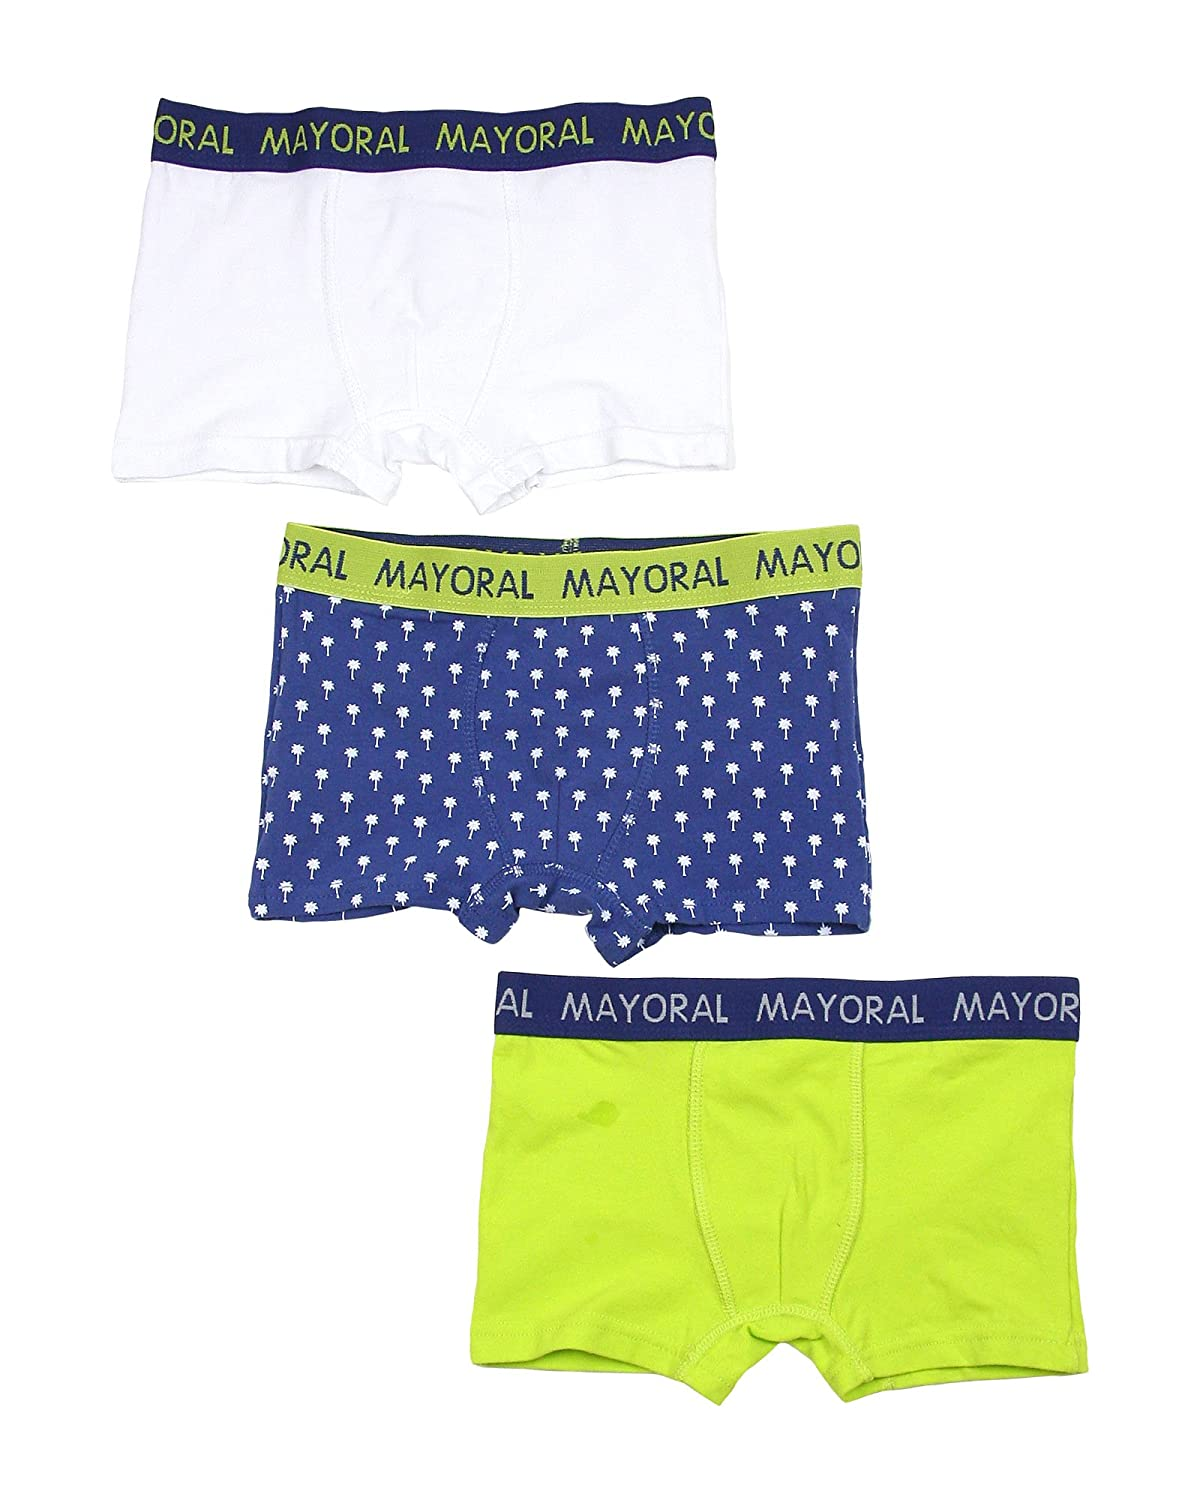 Mayoral Boy's 3-piece Boxers Set , Sizes 2-14 Sizes 2-14 (2)